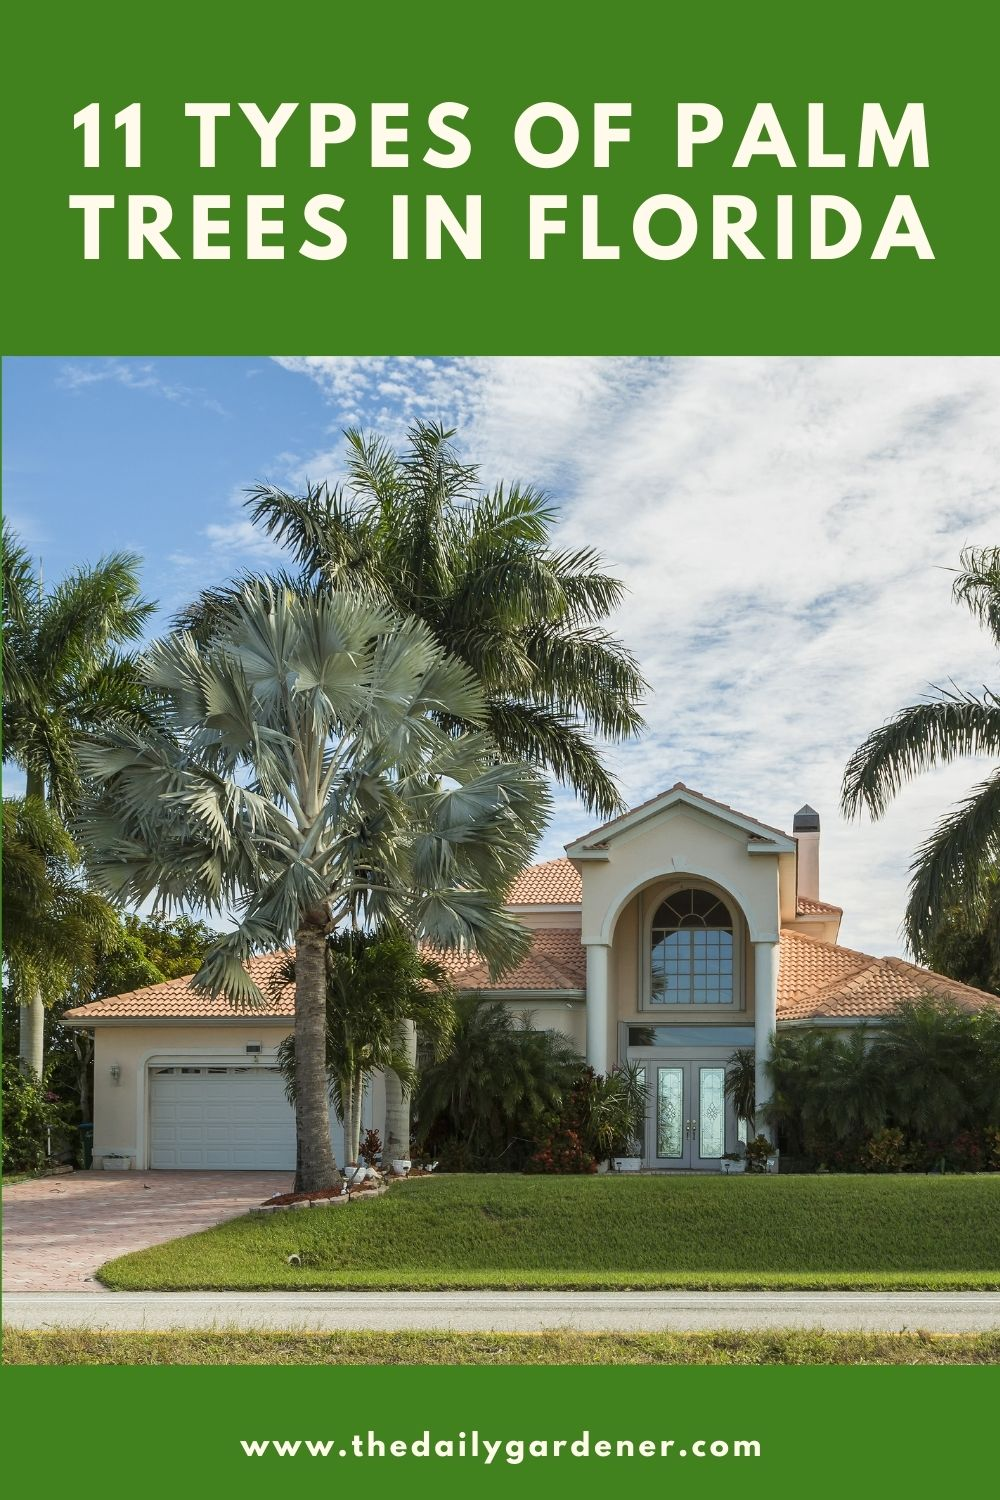 11 Types of Palm Trees in Florida 1